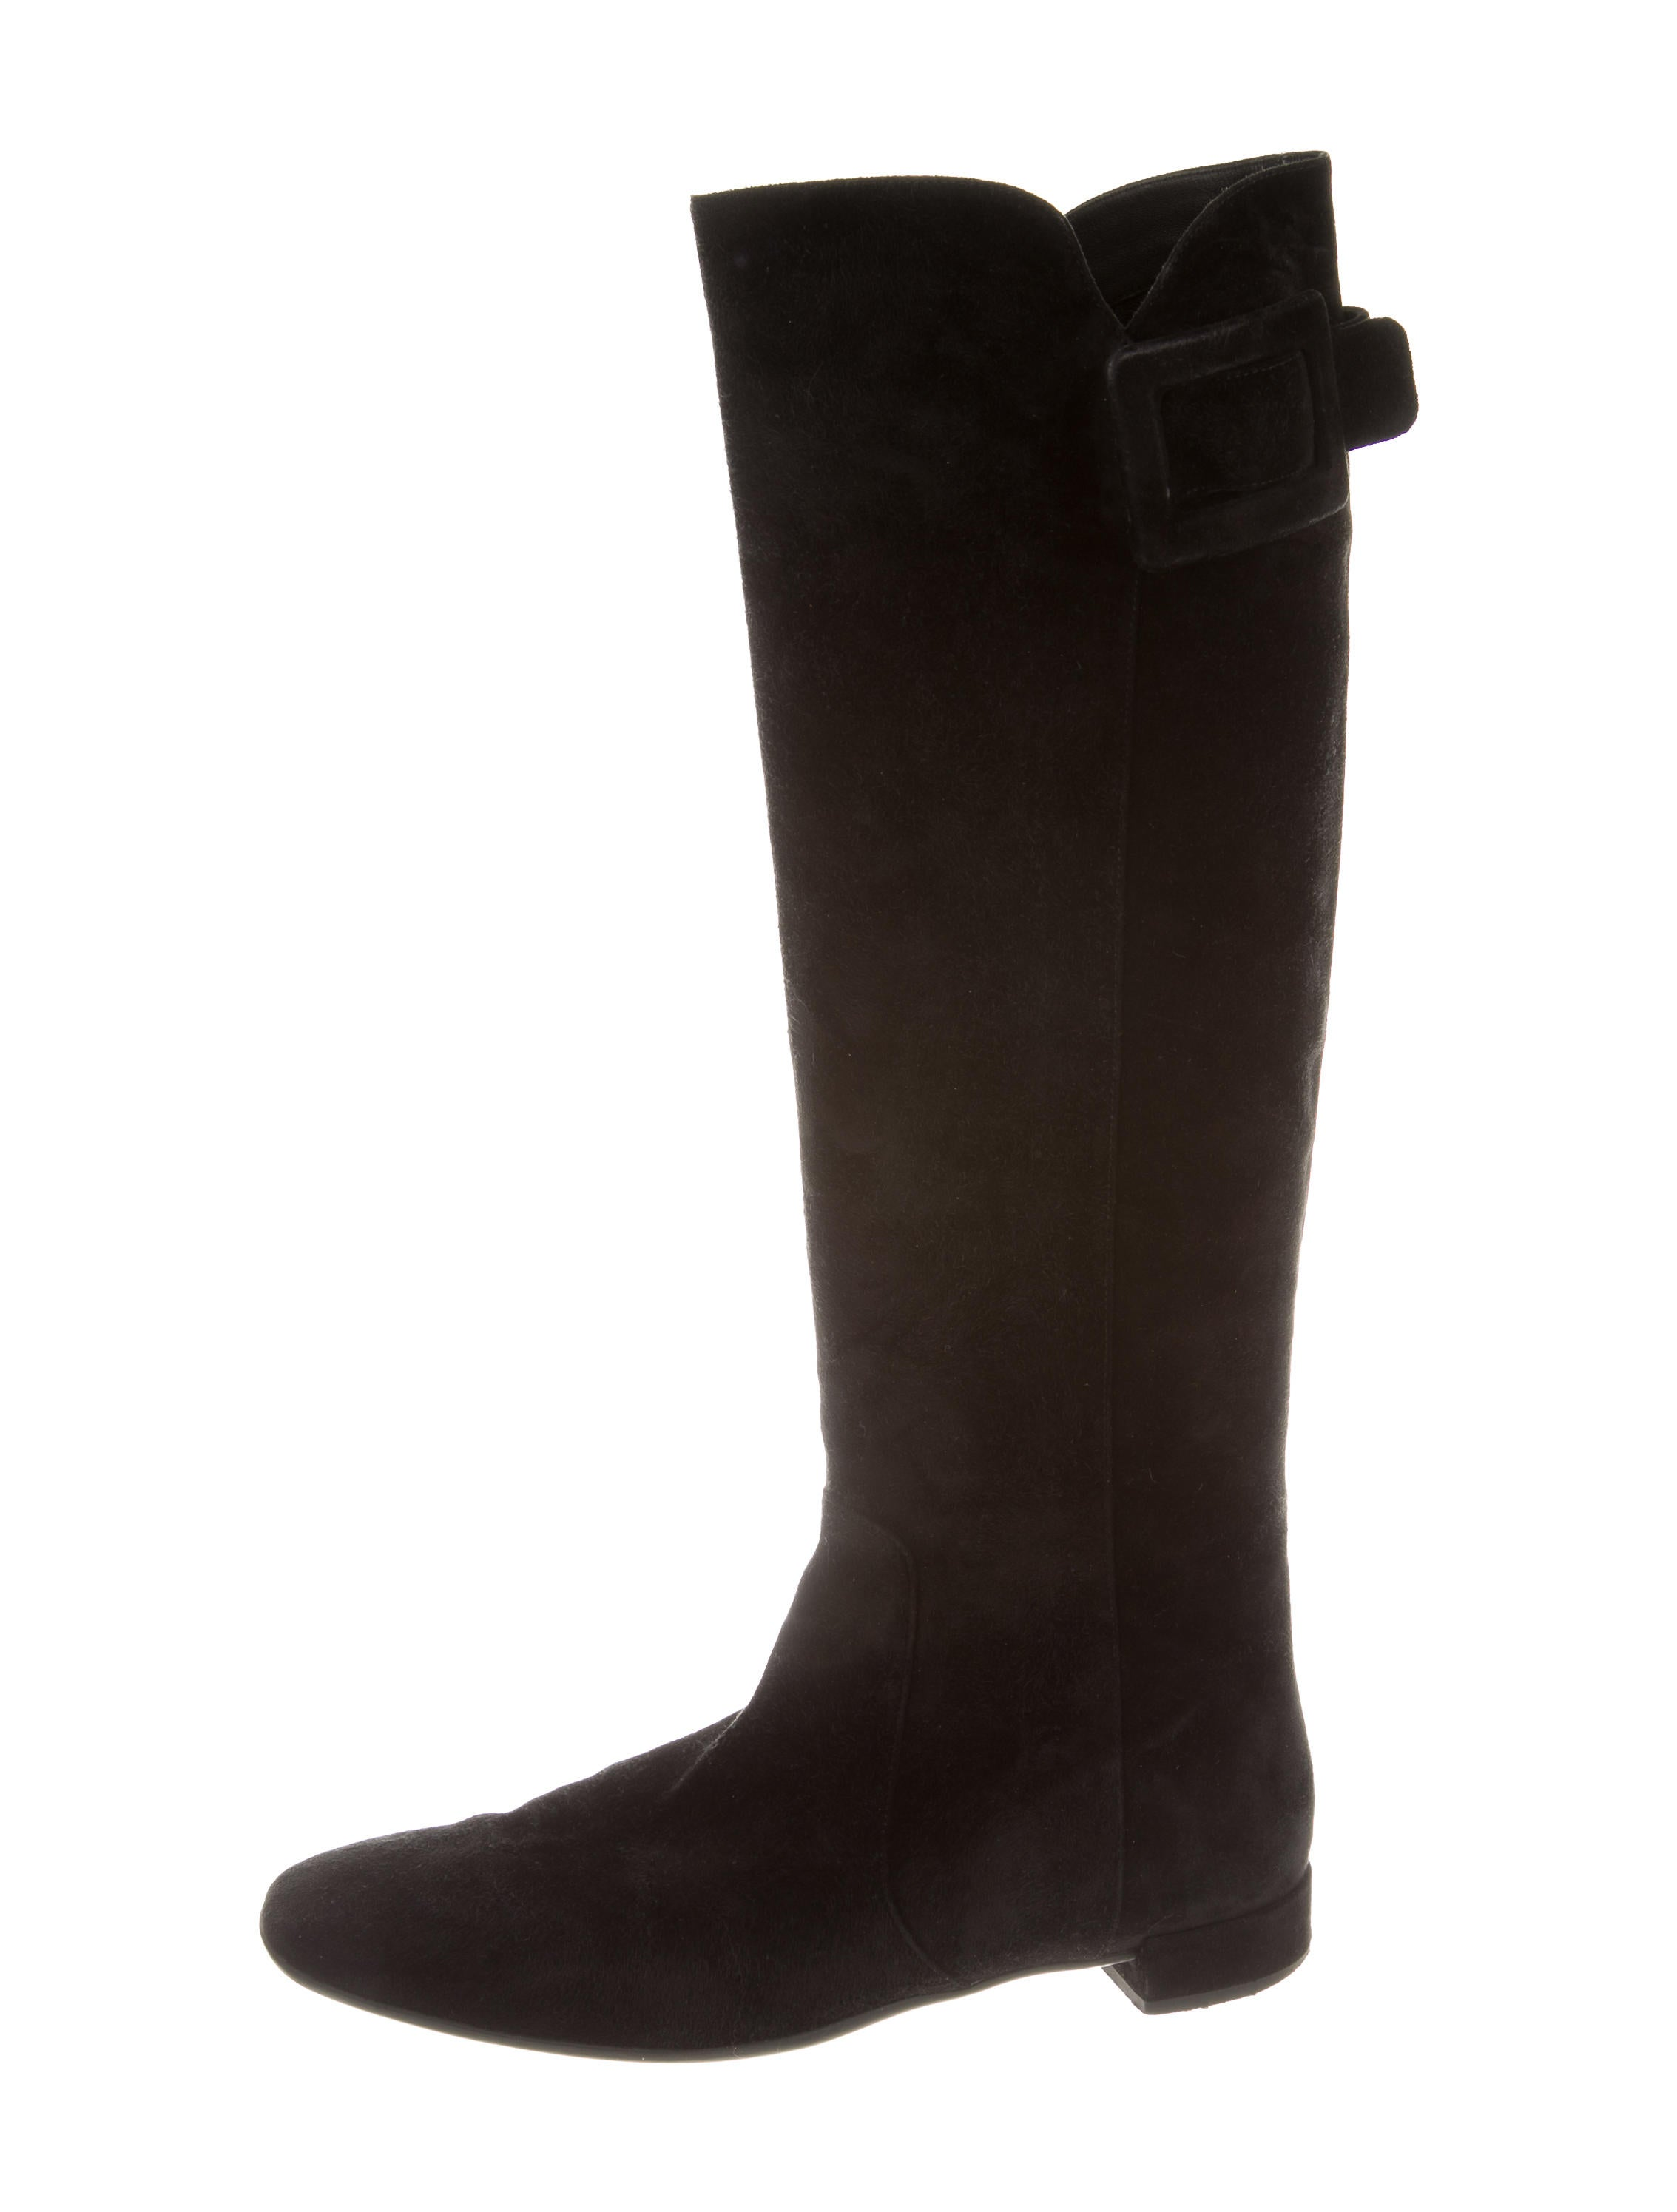 roger vivier suede buckle embellished boots shoes rov23622 the realreal